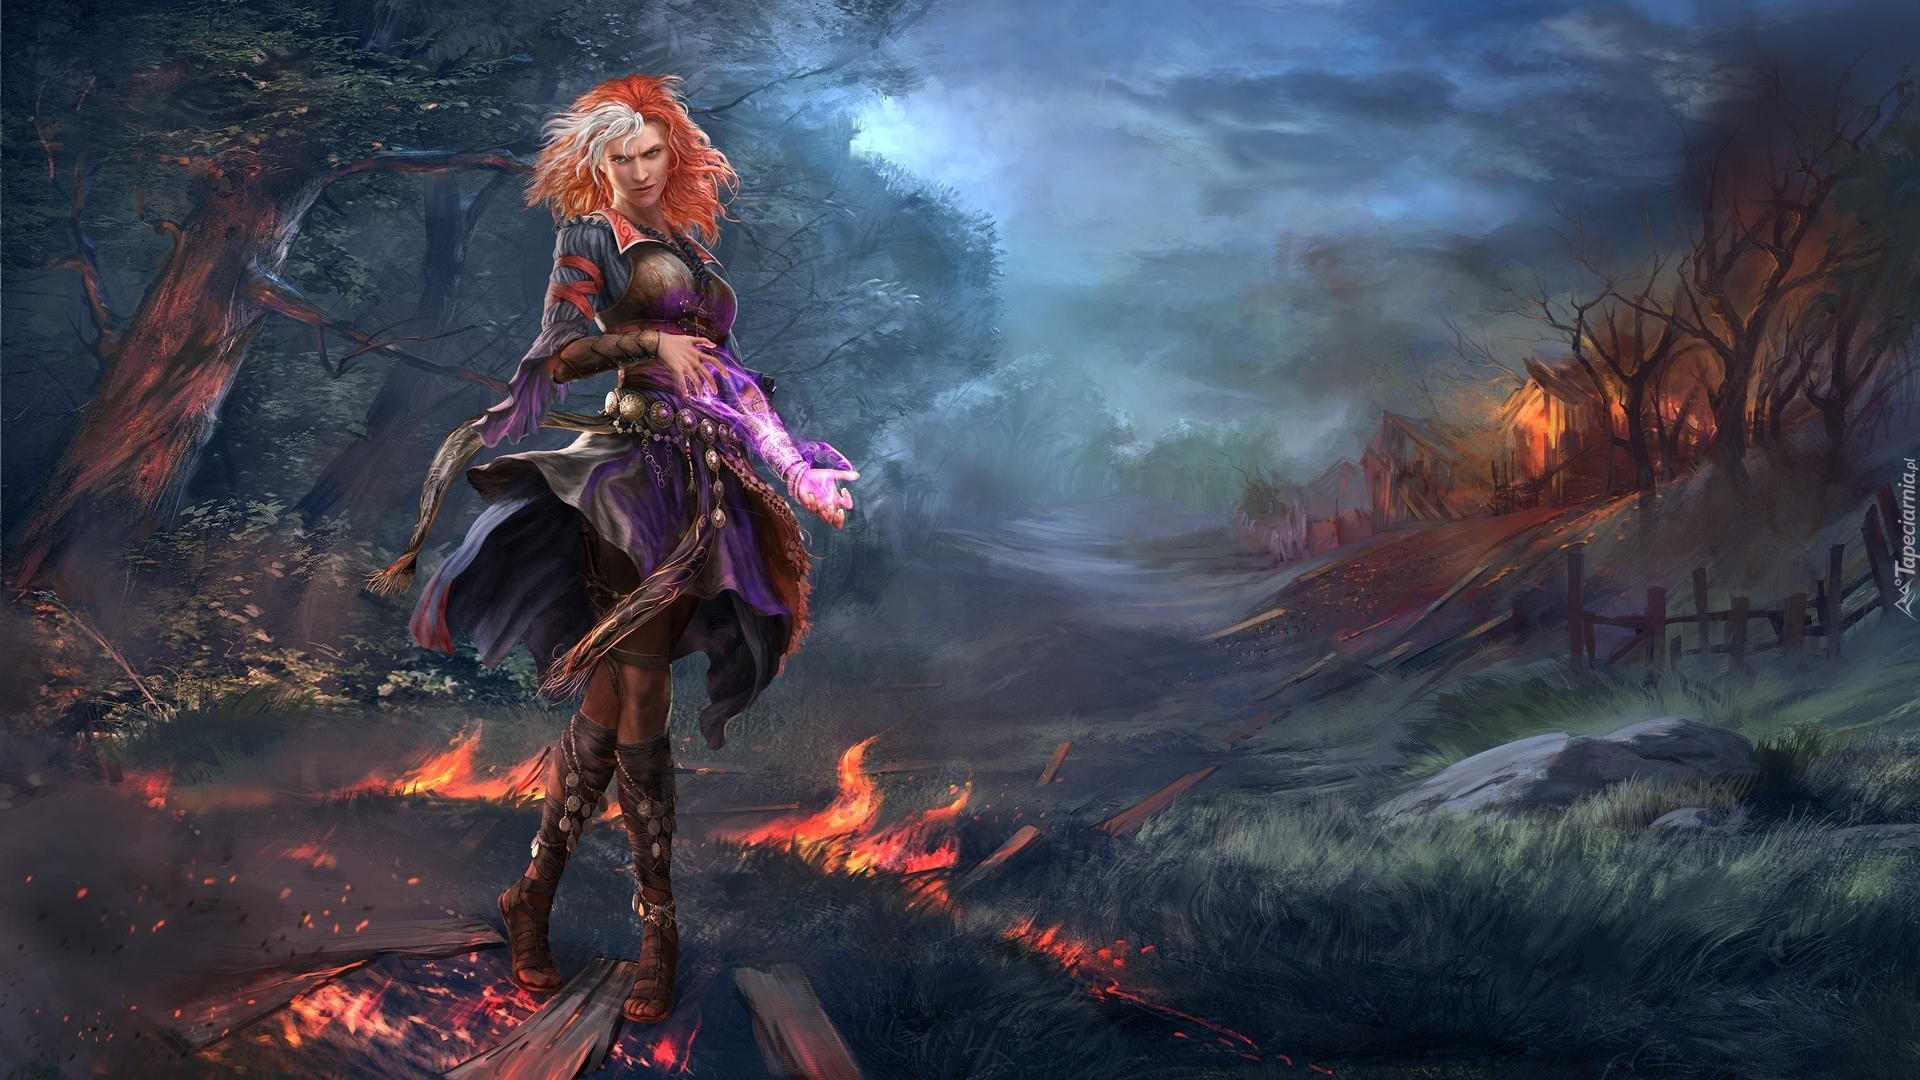 Assassins Creed 2 Hd Wallpapers Lohse Z Gry Divinity Original Sin Ii